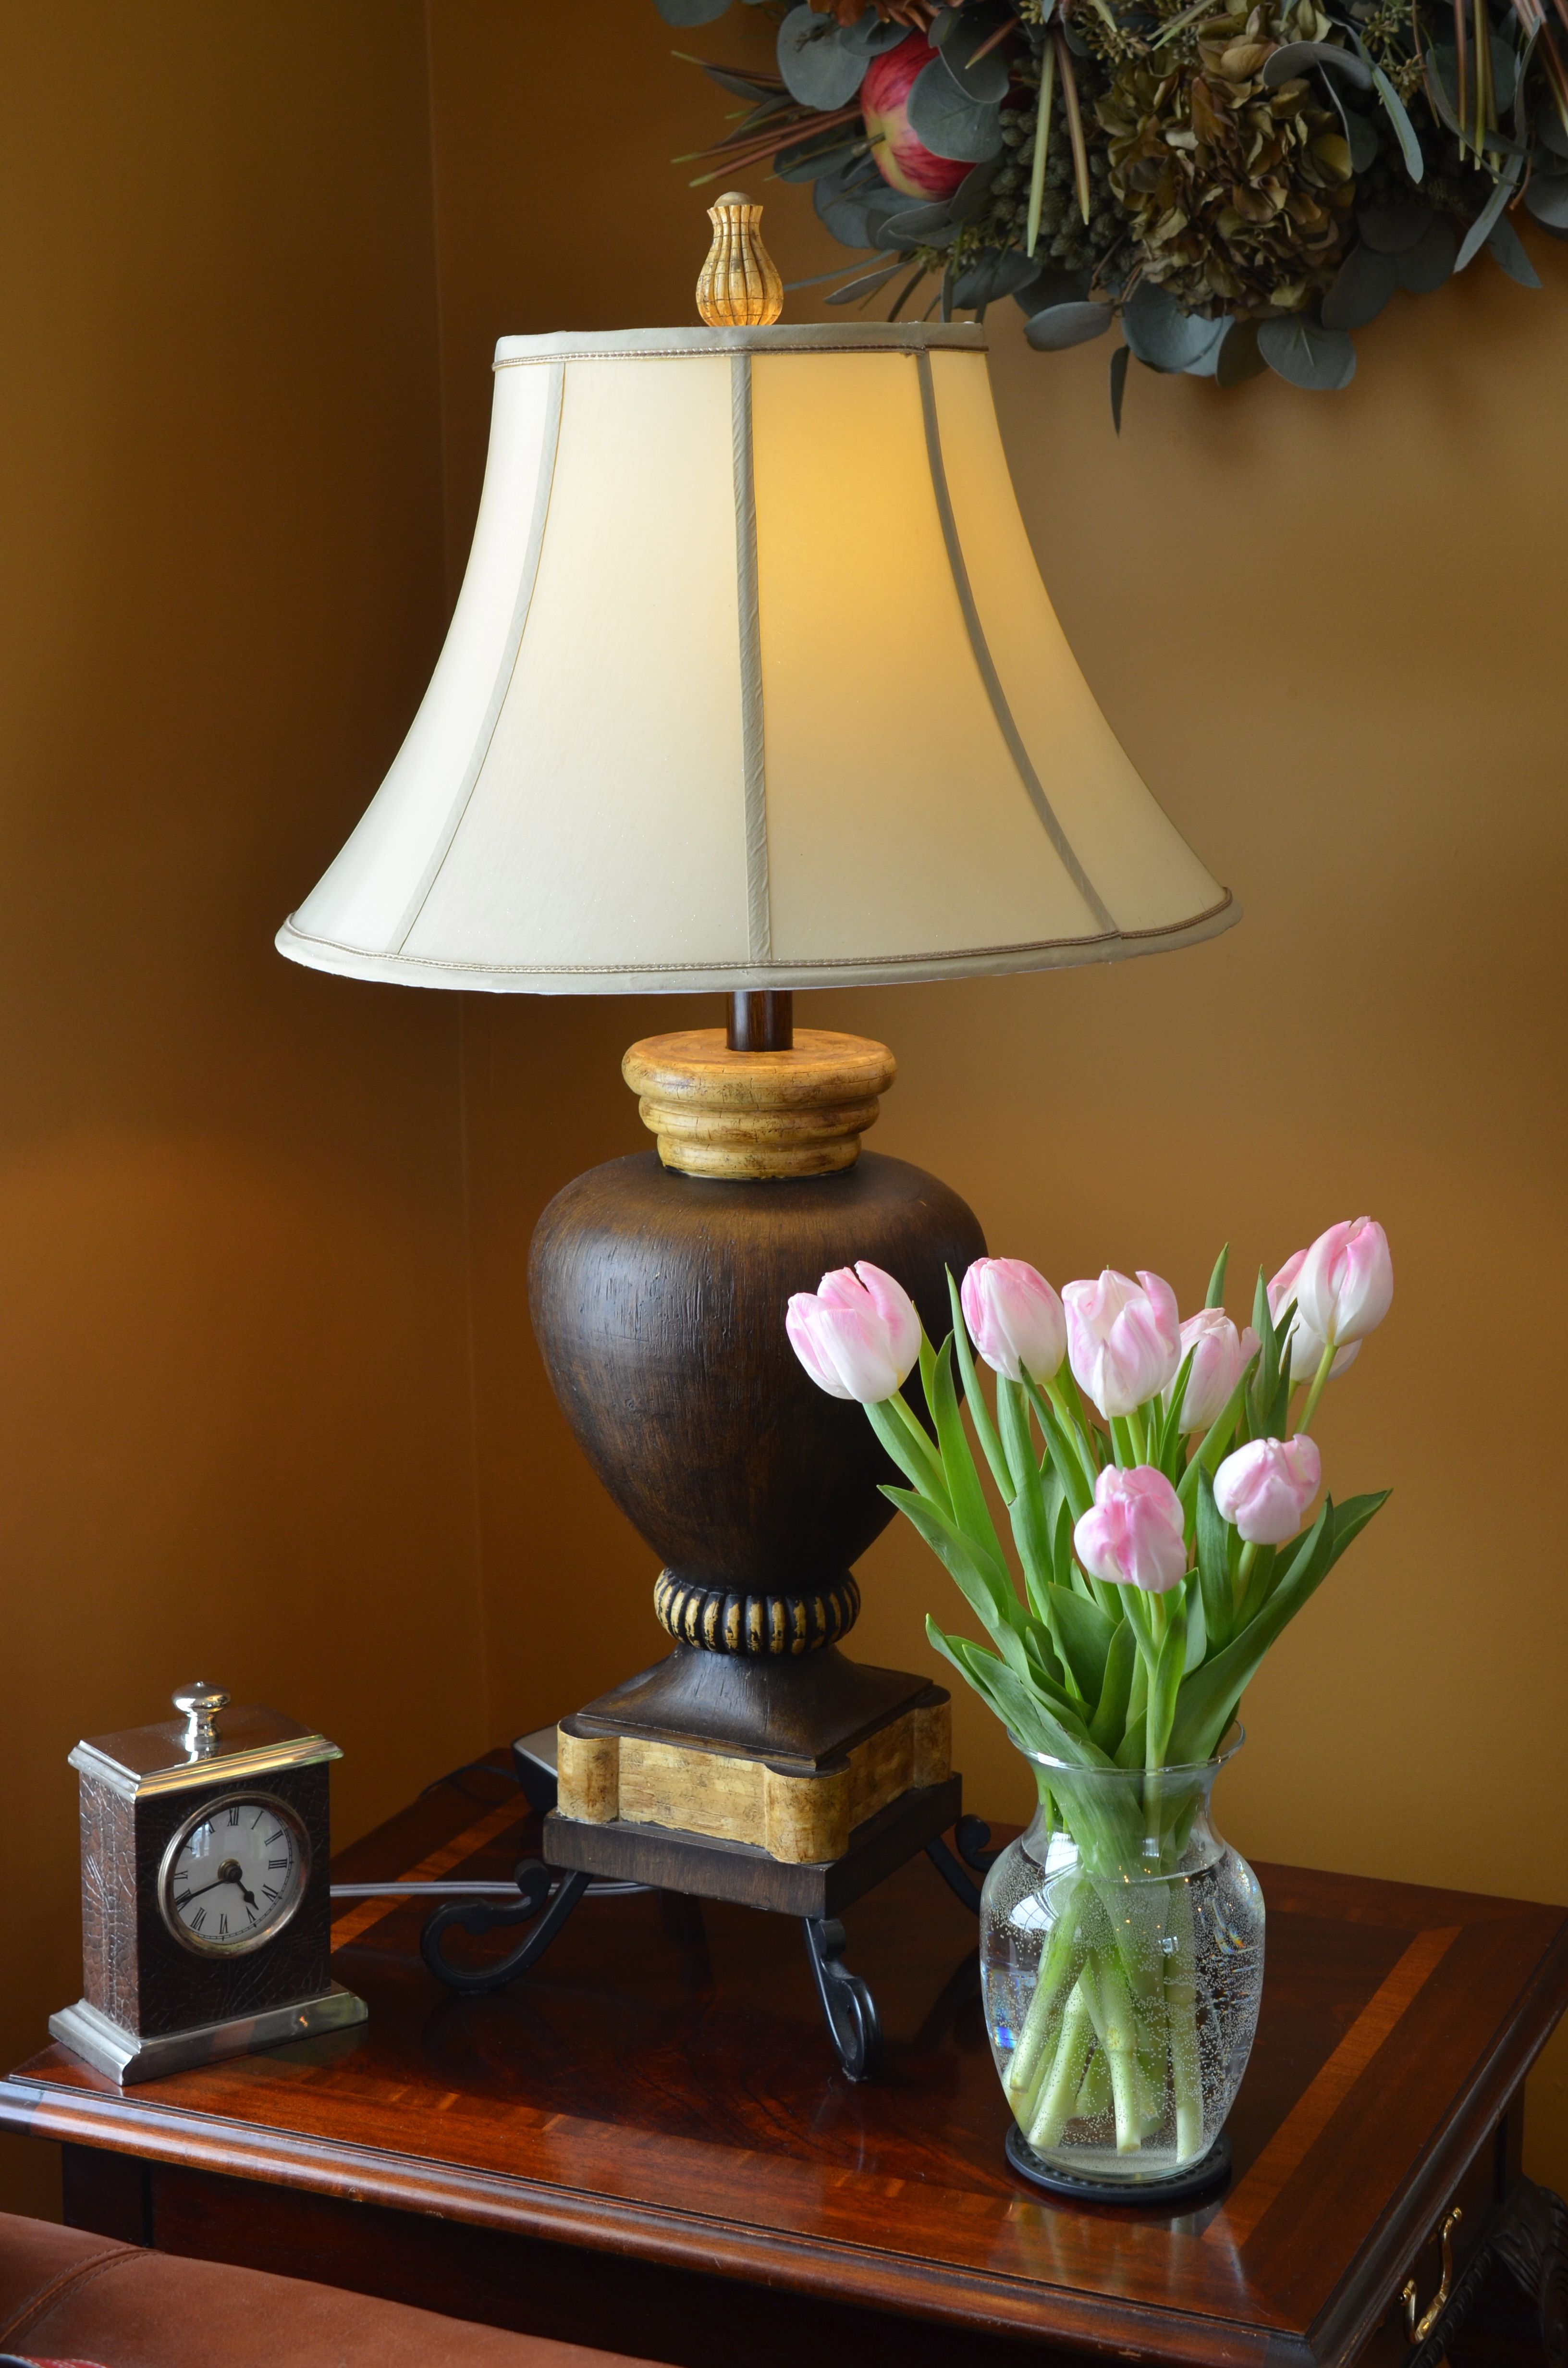 How To Get A Luxury Living Room Pt 1 Golden Lighting: Mahogany, Lamp, Table Lamp